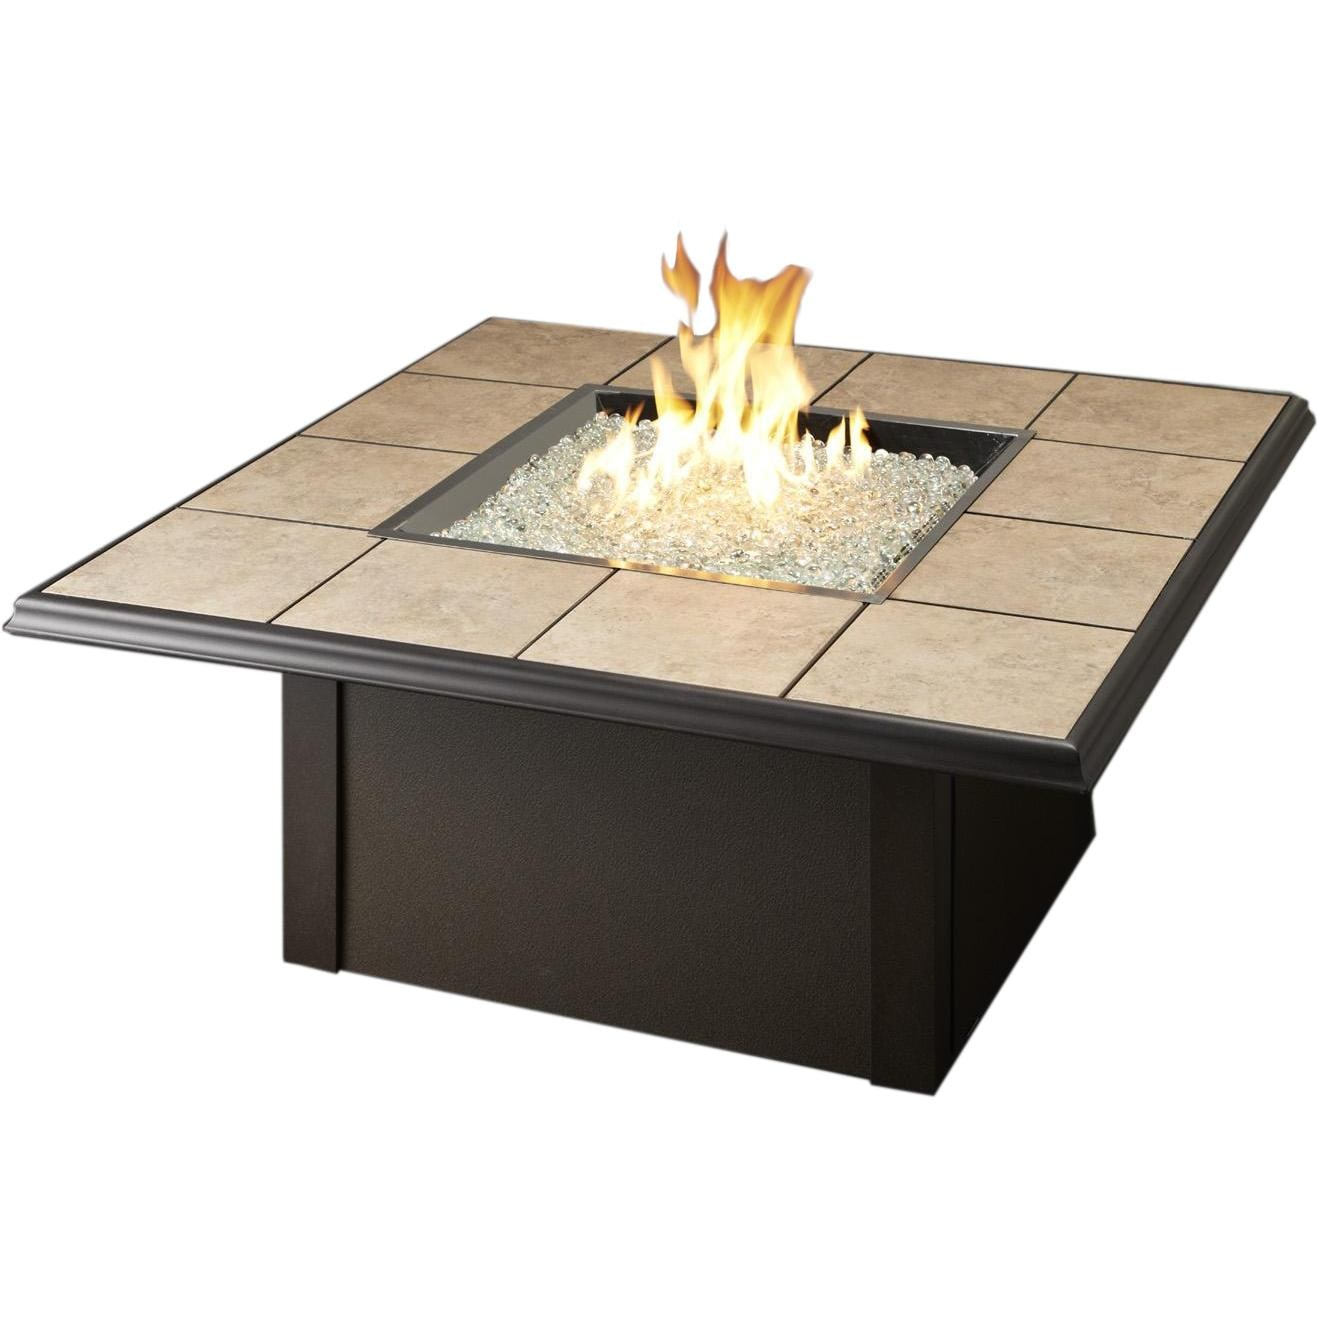 Napa Valley Propane Fire Pit Table By Outdoor GreatRoom Company   Brown